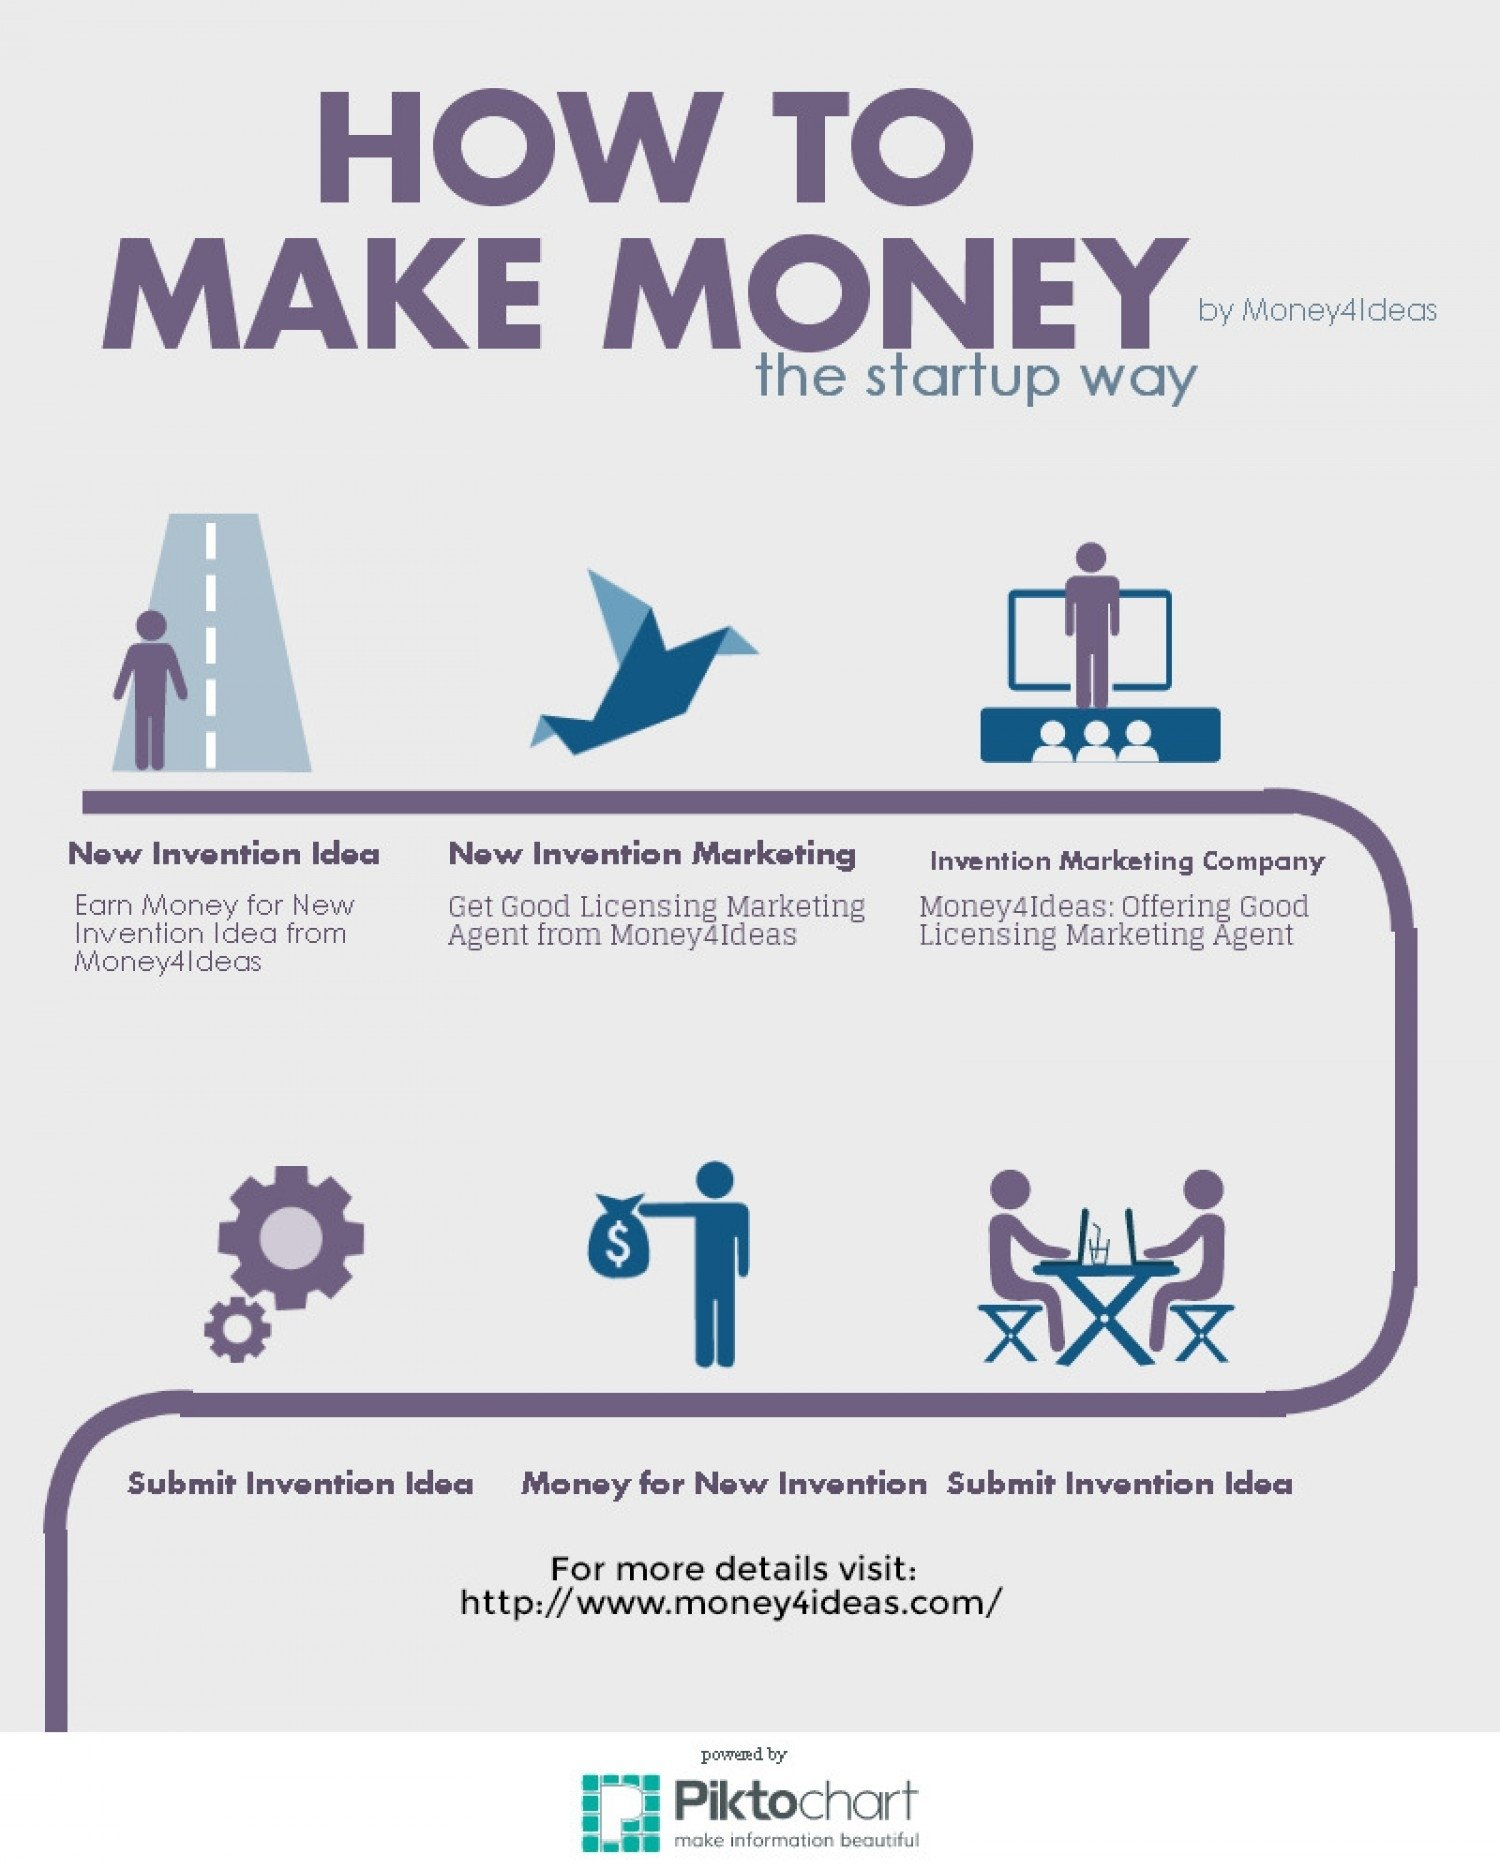 10 Beautiful Ideas How To Make Money earn money for new invention idea from money4ideas visual ly 2 2020